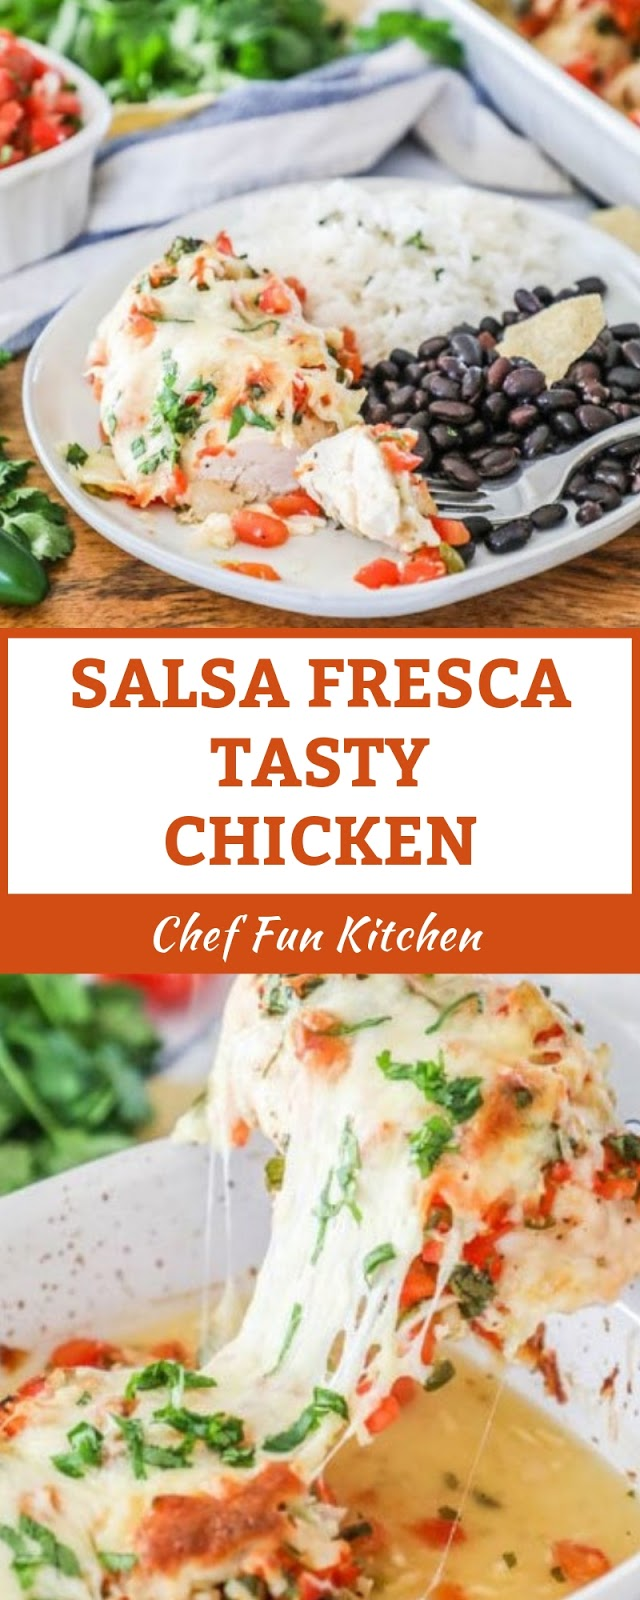 SALSA FRESCA TASTY CHICKEN